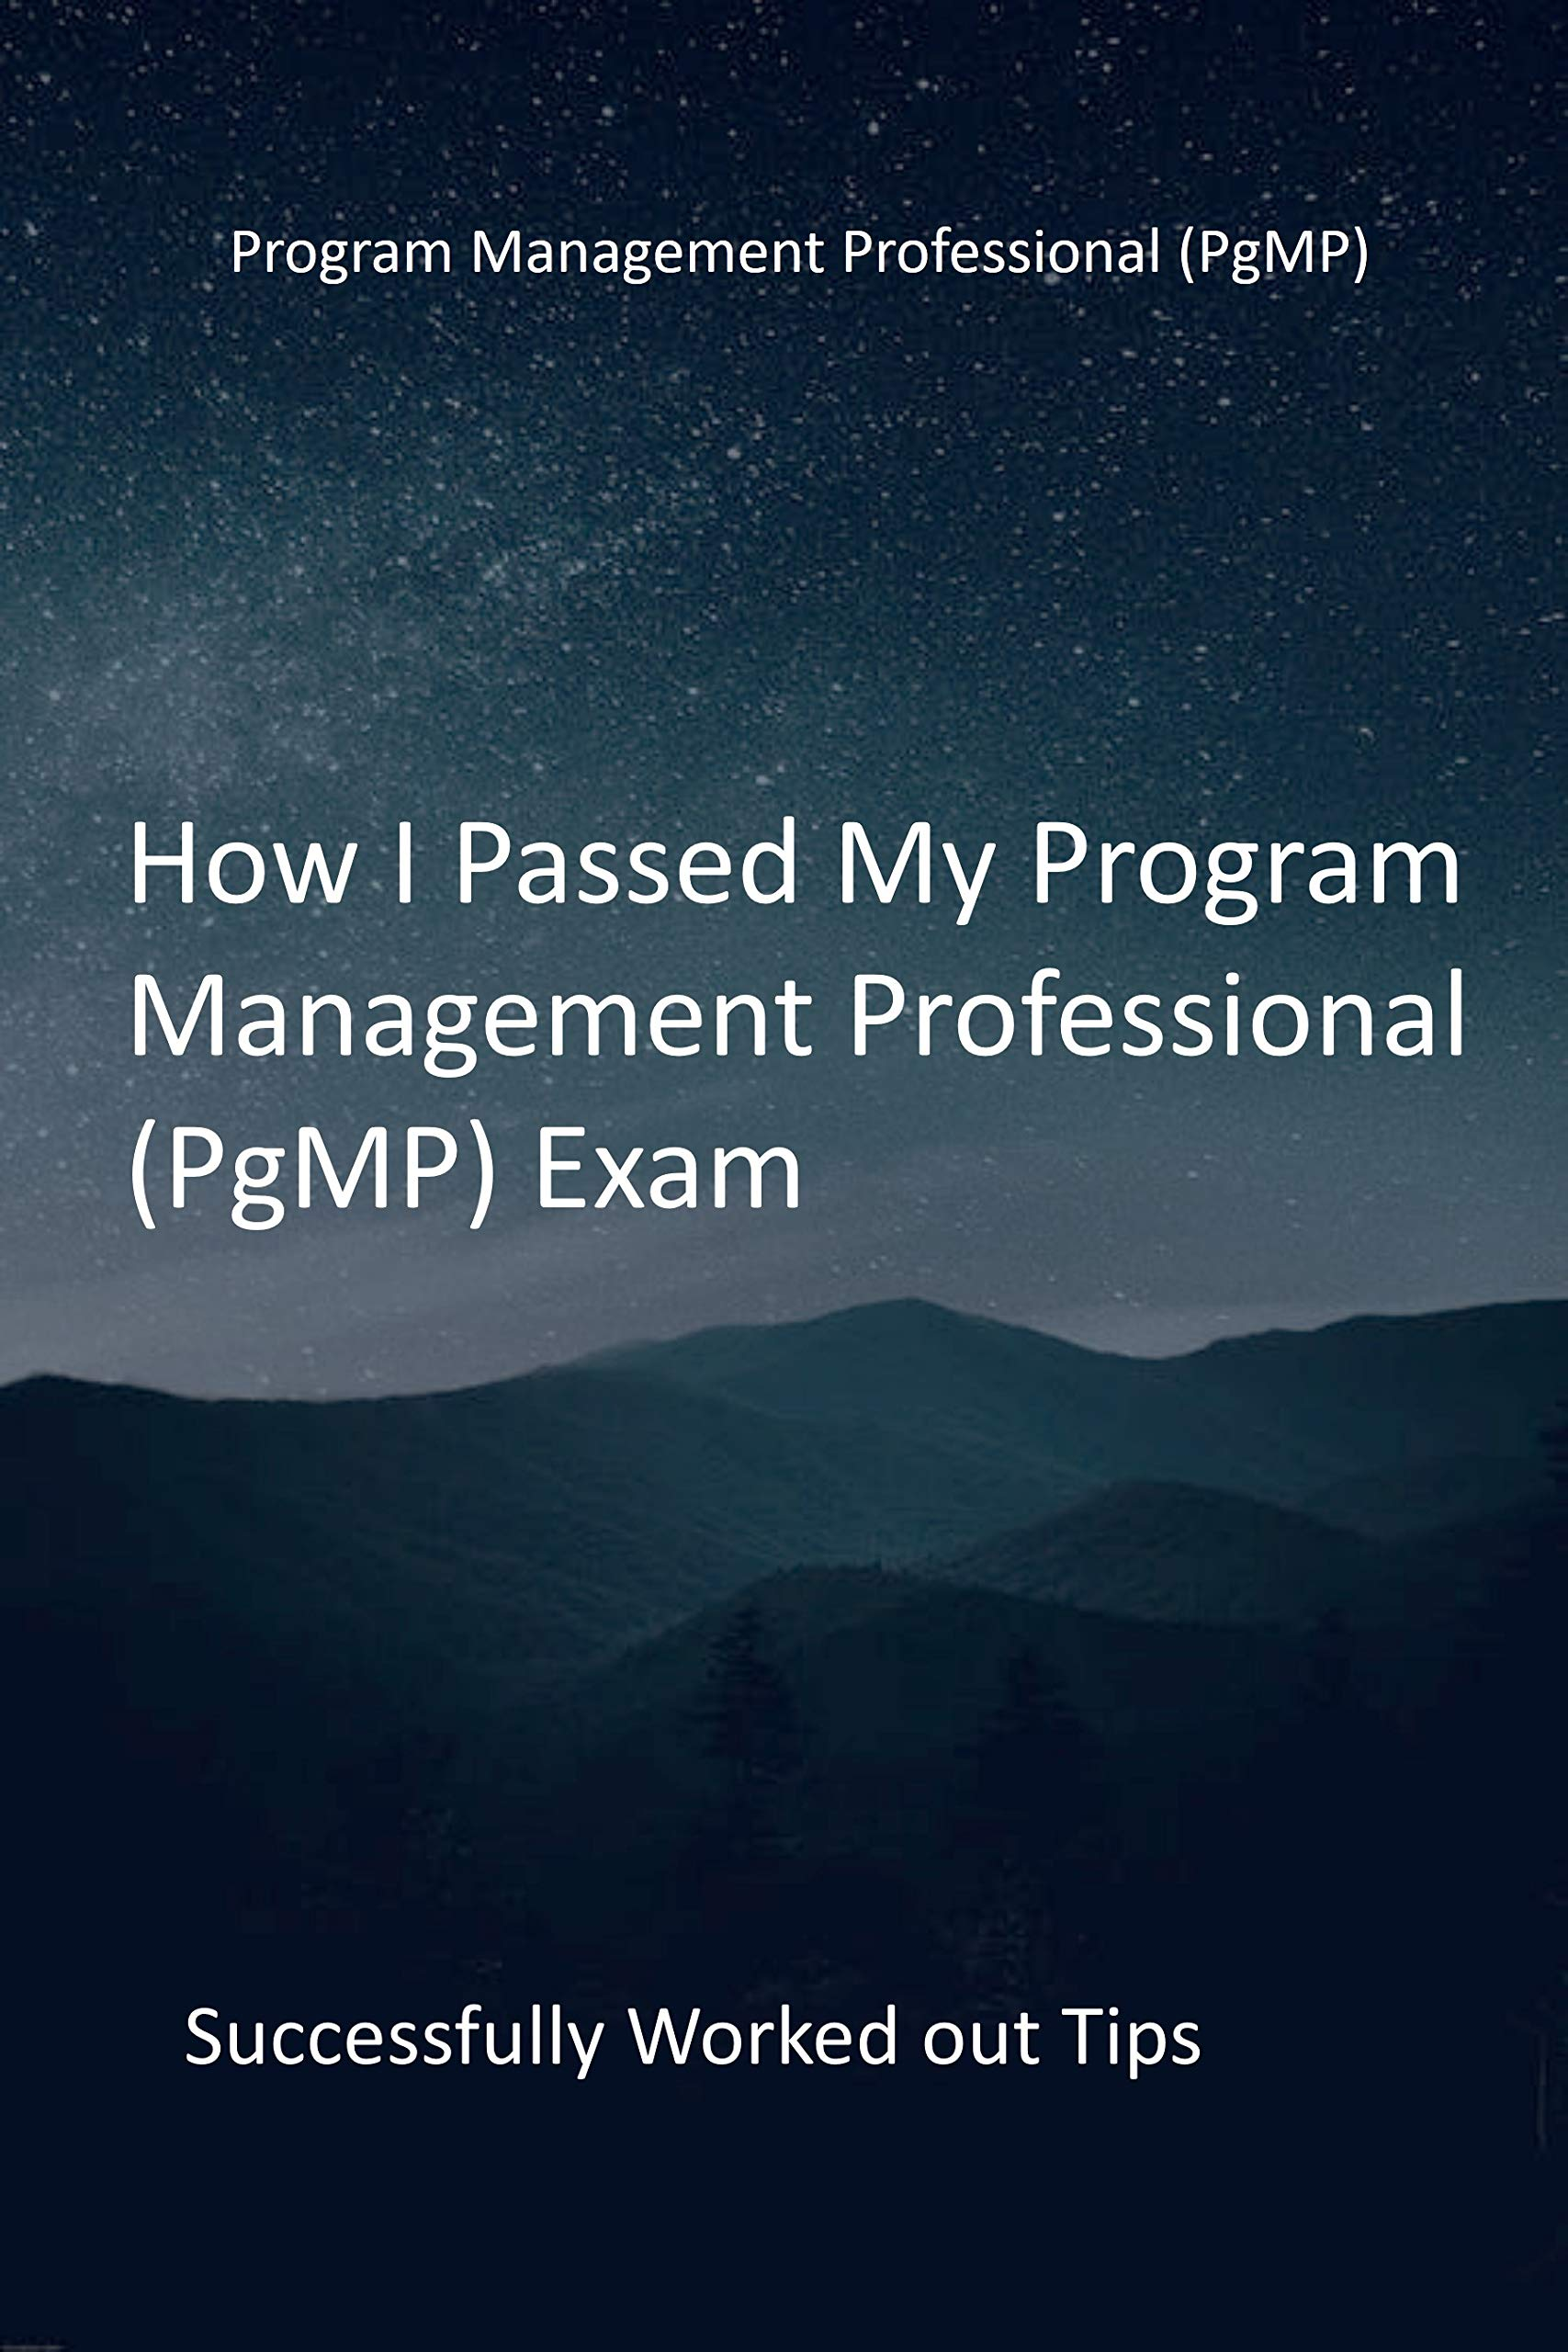 How I Passed My Program Management Professional (PgMP) Exam: Successfully Worked out Tips